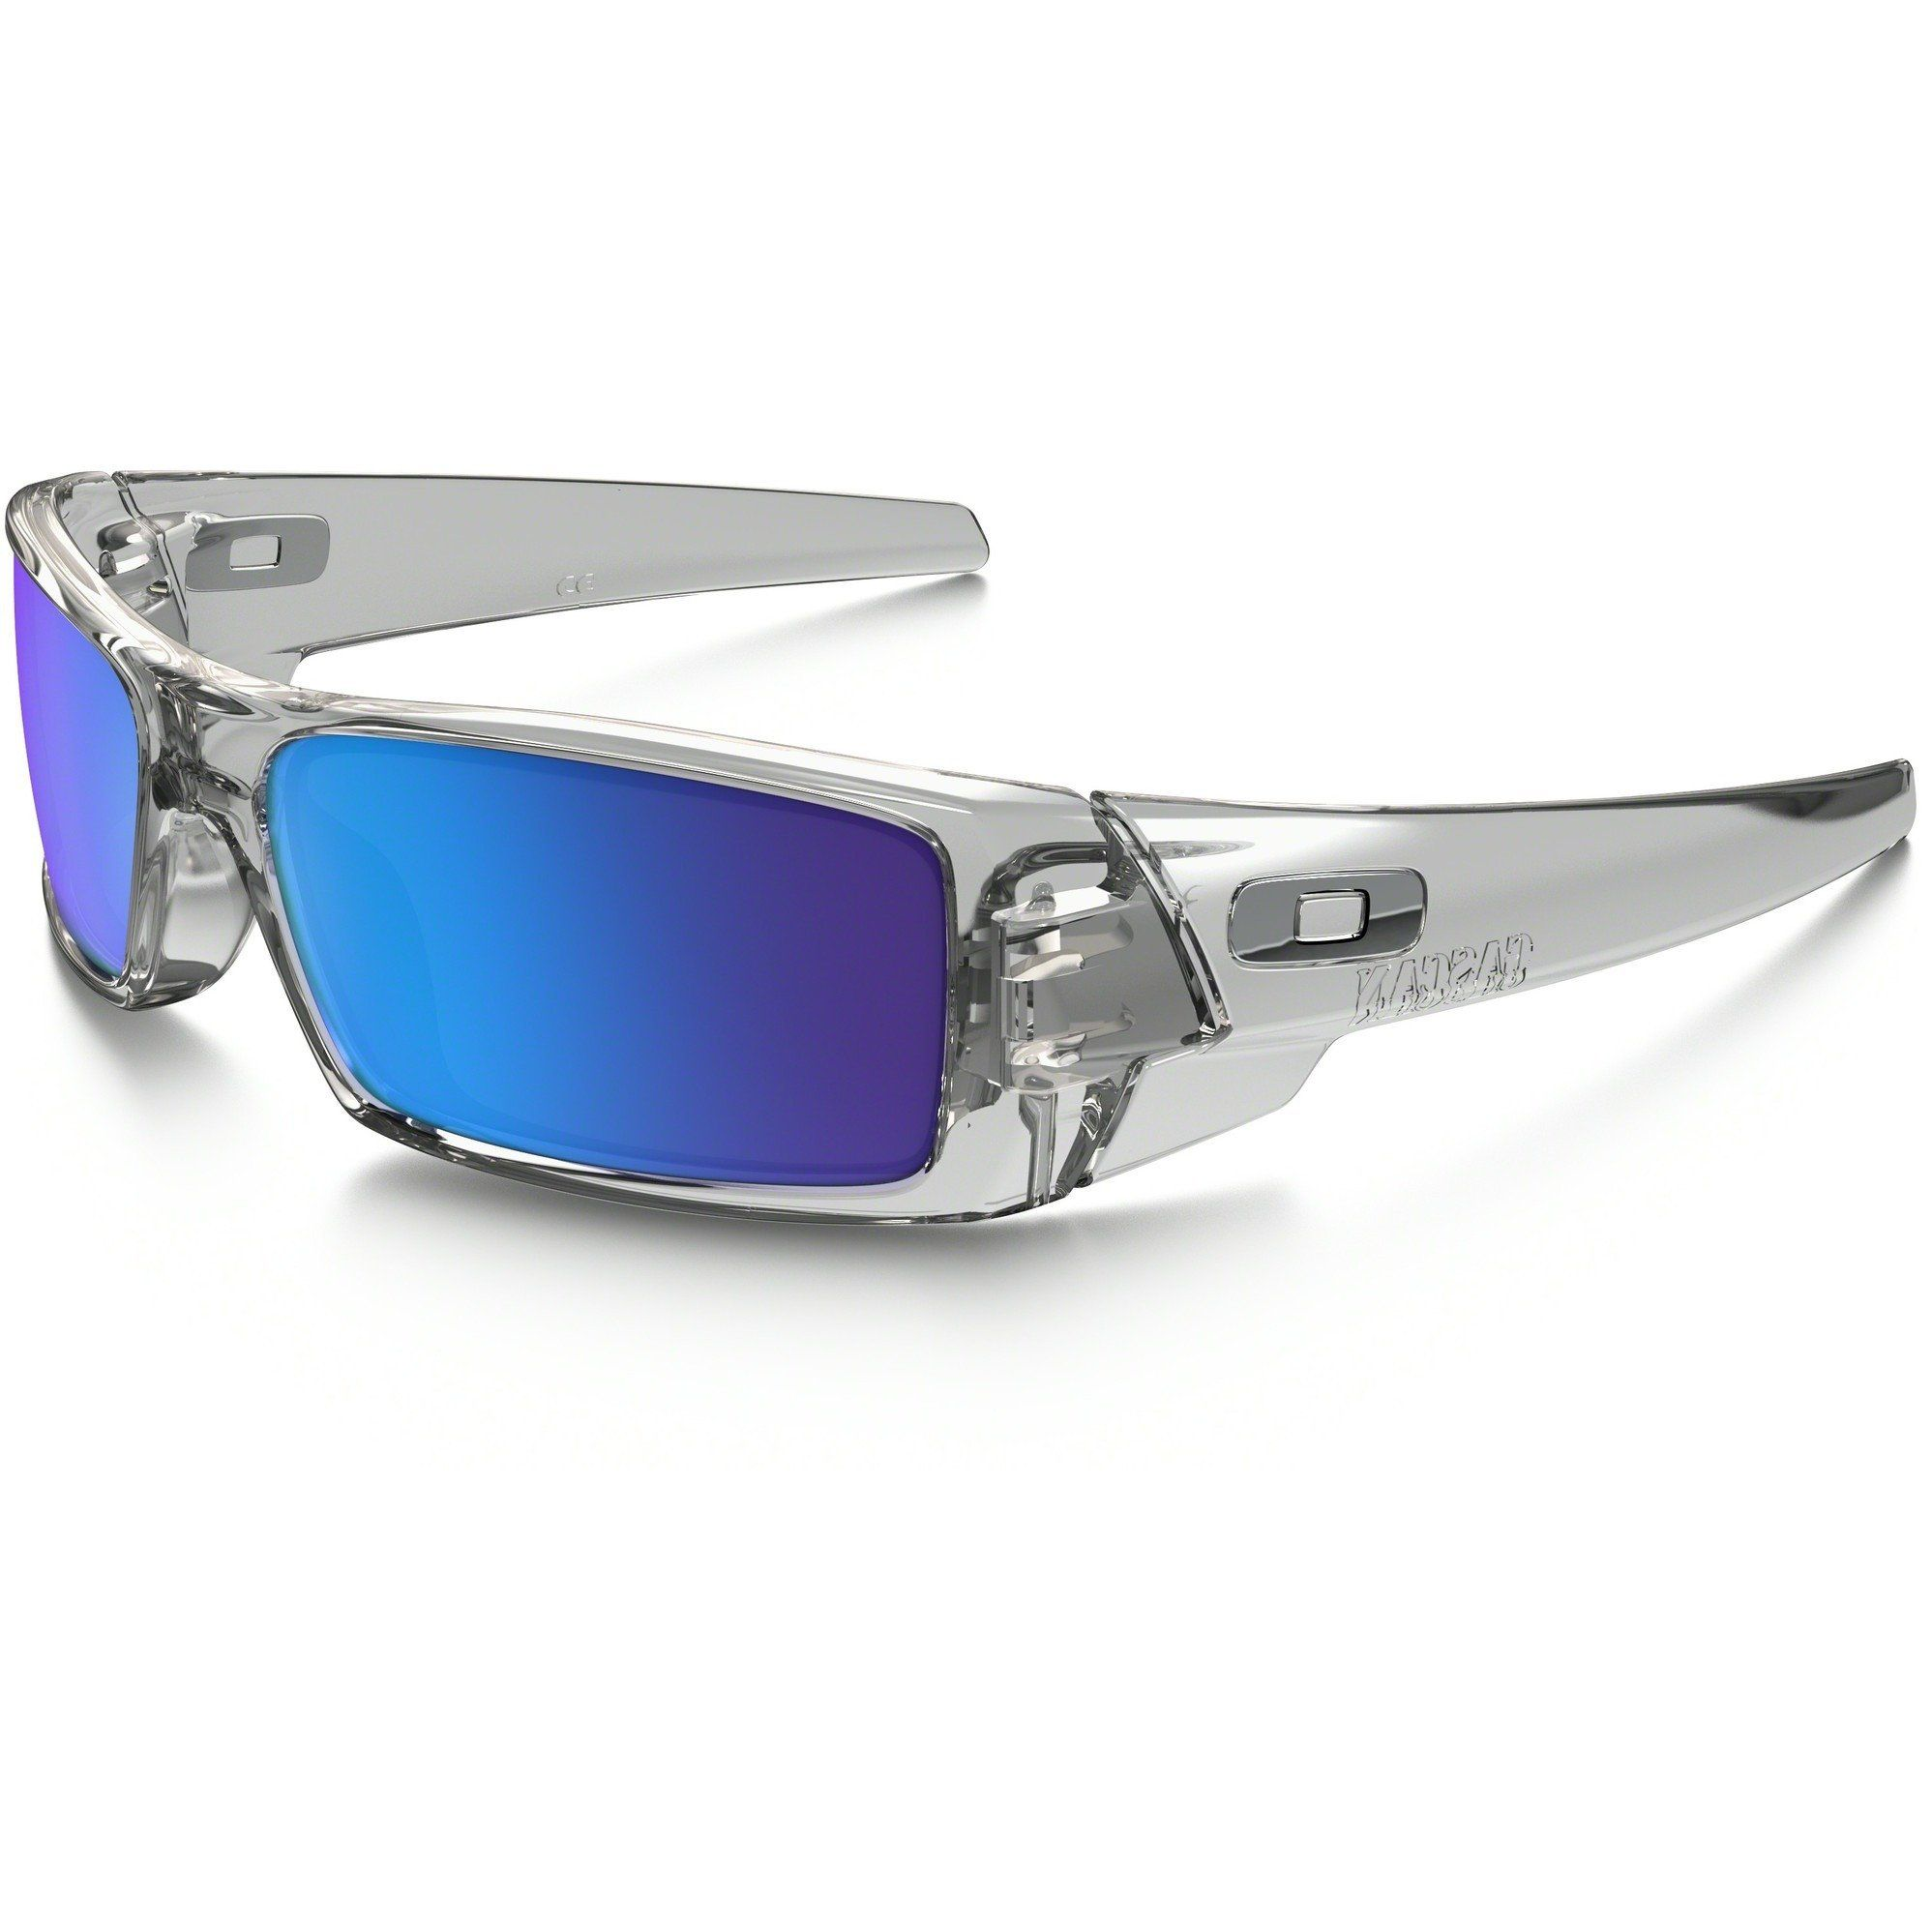 Oakley Gascan Clear Frame Sunglasses | Products | Pinterest | Oakley ...